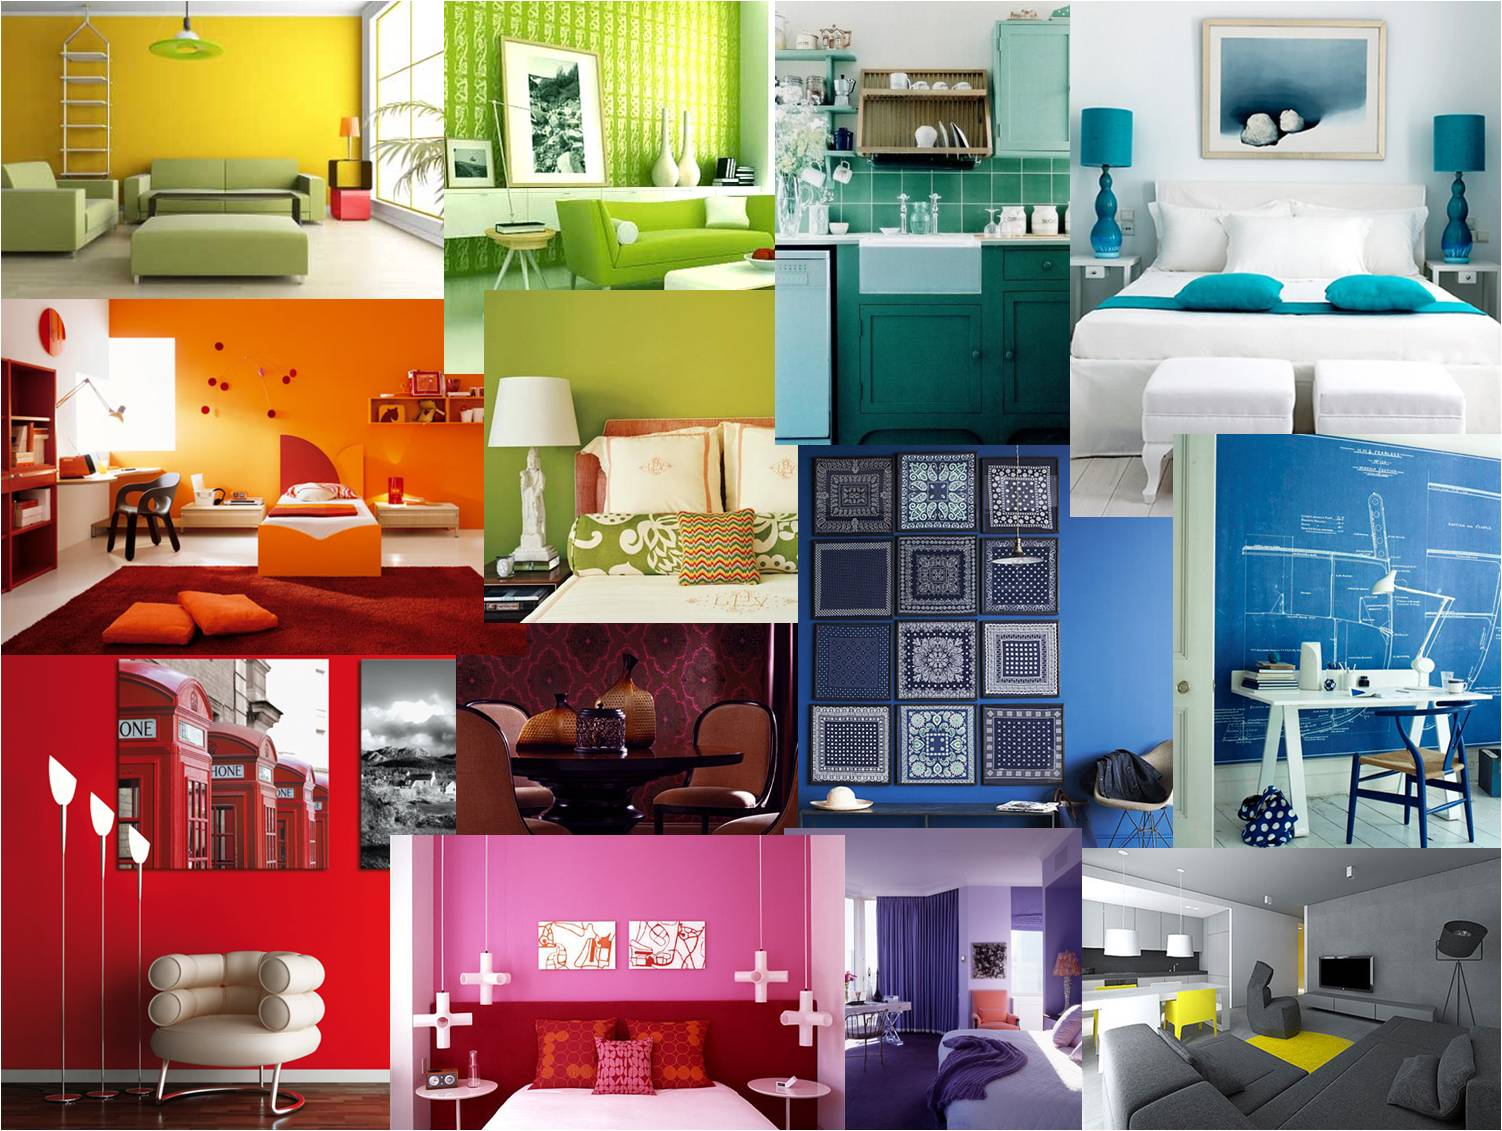 The (emotional) Rainbow Connection: Finding The Right Colors For Your Home